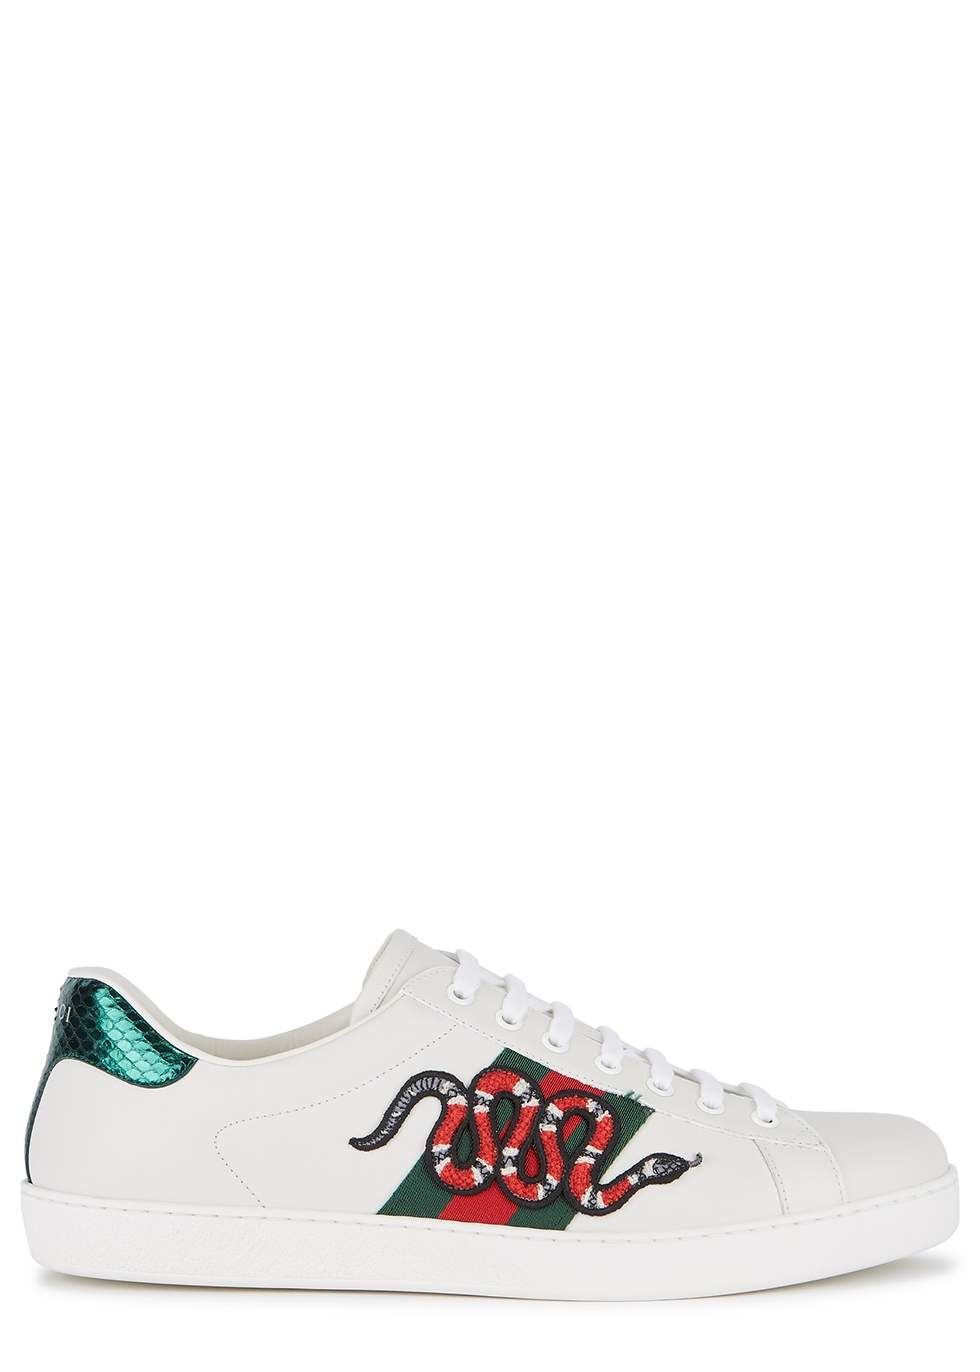 Ace snake-embroidered leather sneakers